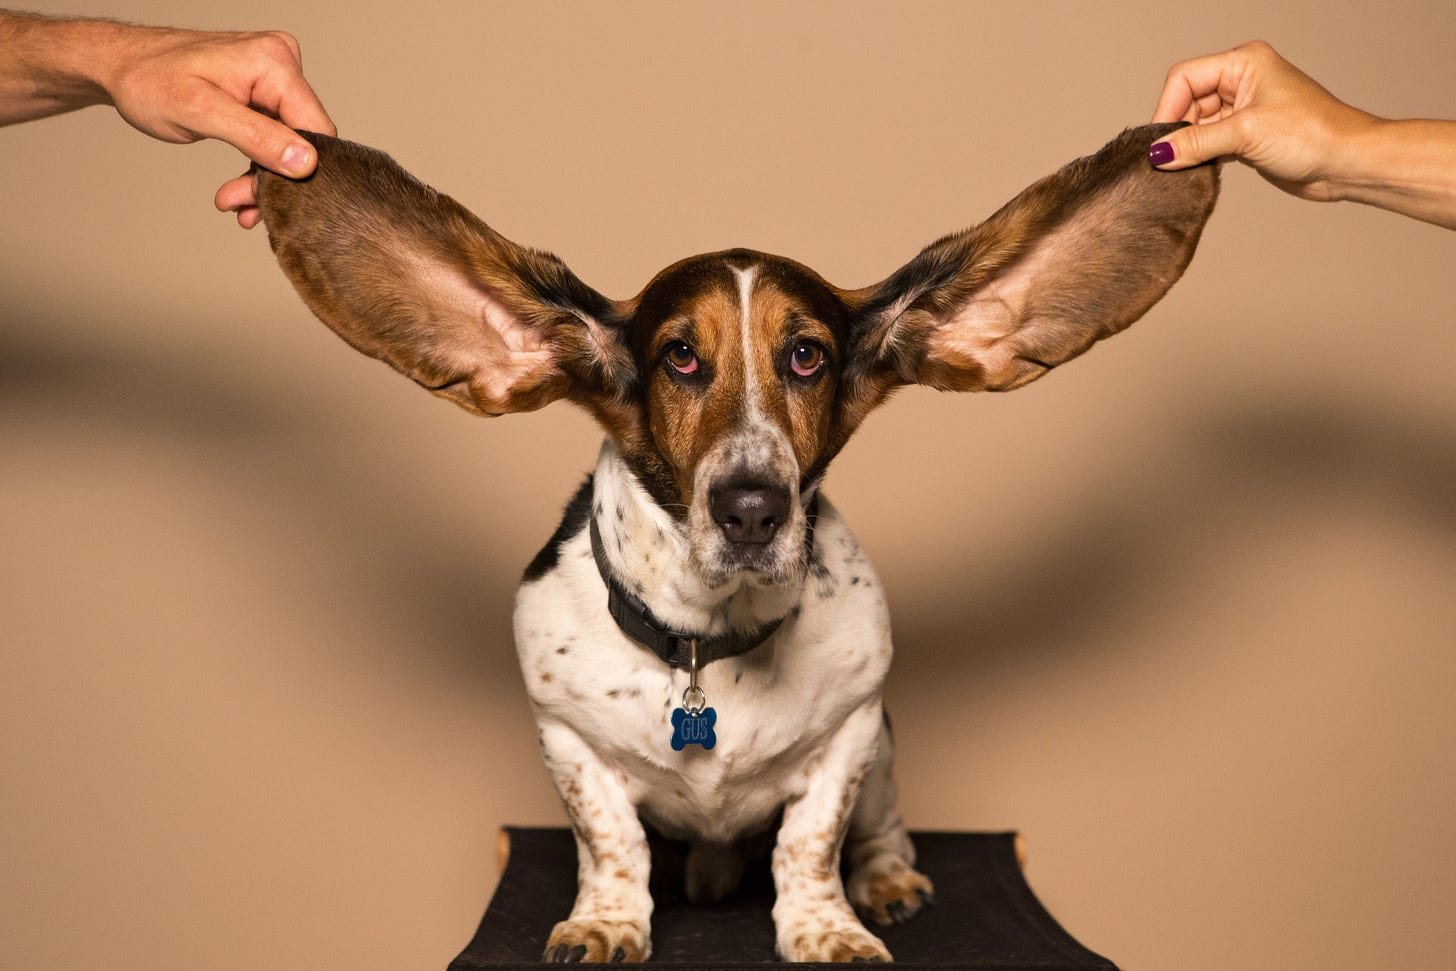 Dog with big ears held up by human hands